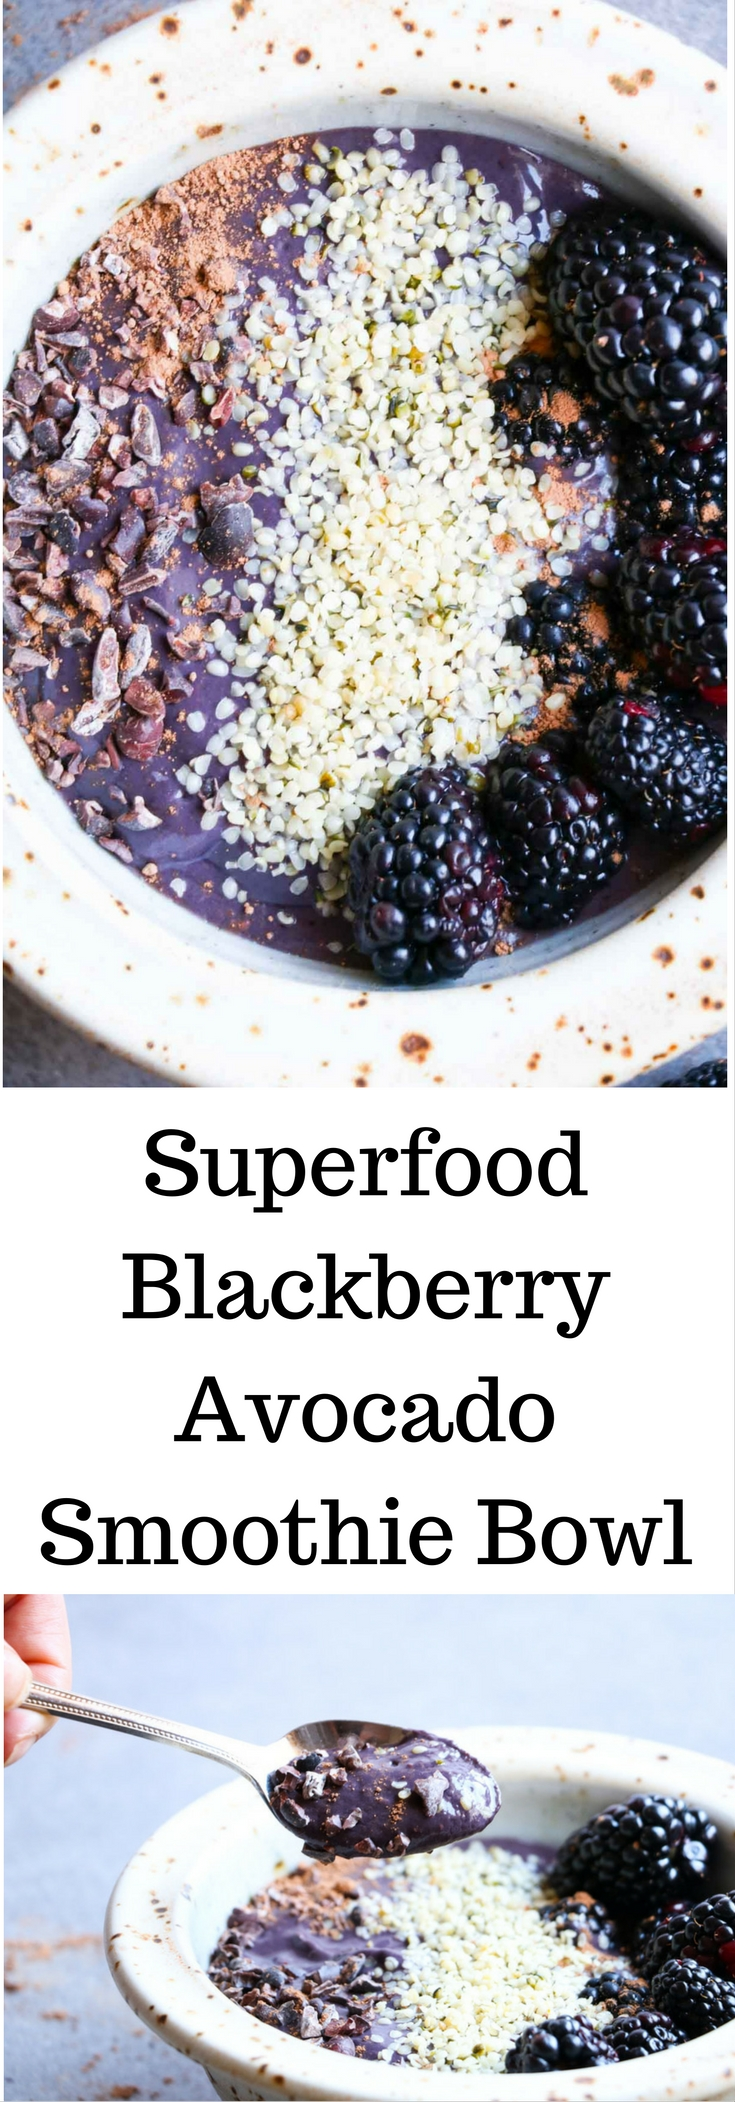 This vegan superfood blackberry avocado smoothie bowl is low in sugar, high in antioxidants and good for you fat. You eat this smoothie with a spoon and then walk through the pearly gates of breakfast heaven. #vegan #smoothiebowl